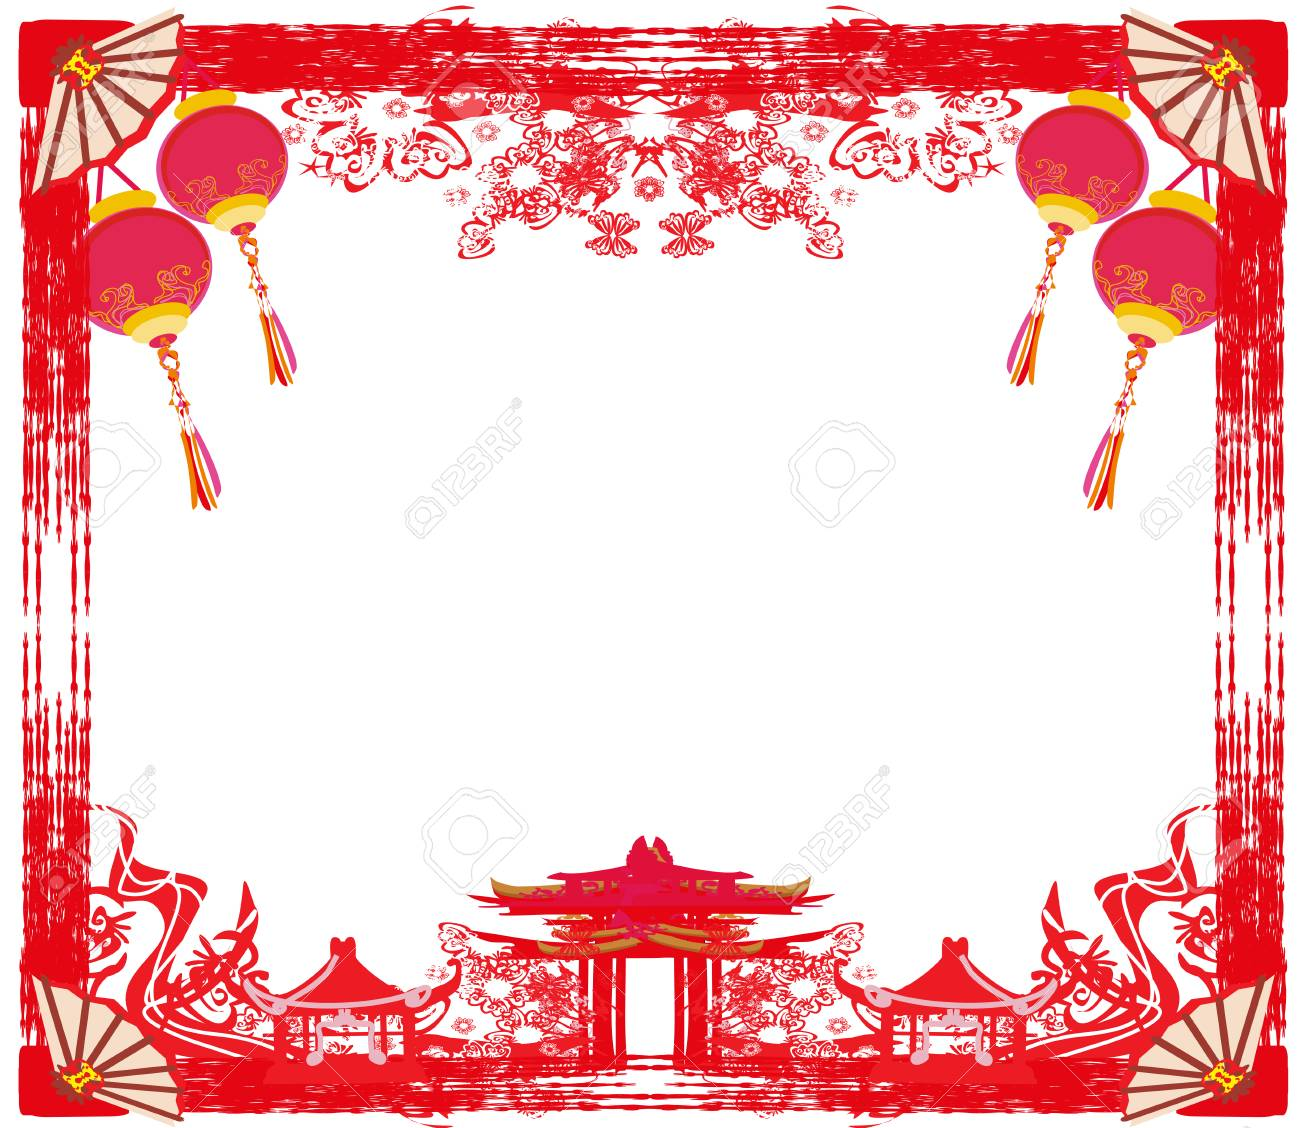 Mid Autumn Festival For Chinese New Year Frame Royalty Free